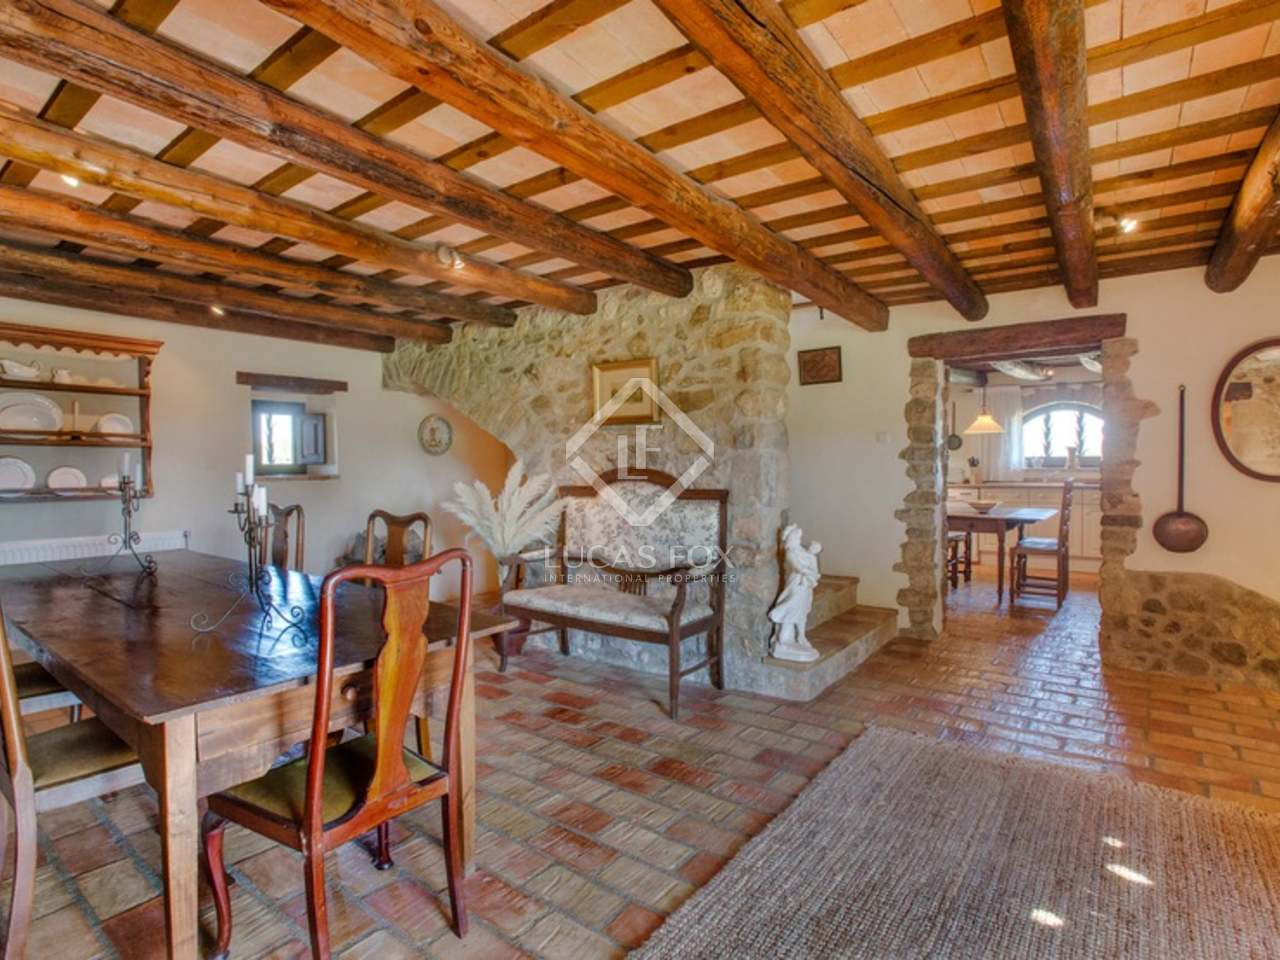 Renovated country house in the baix empord for sale for Buy guest house